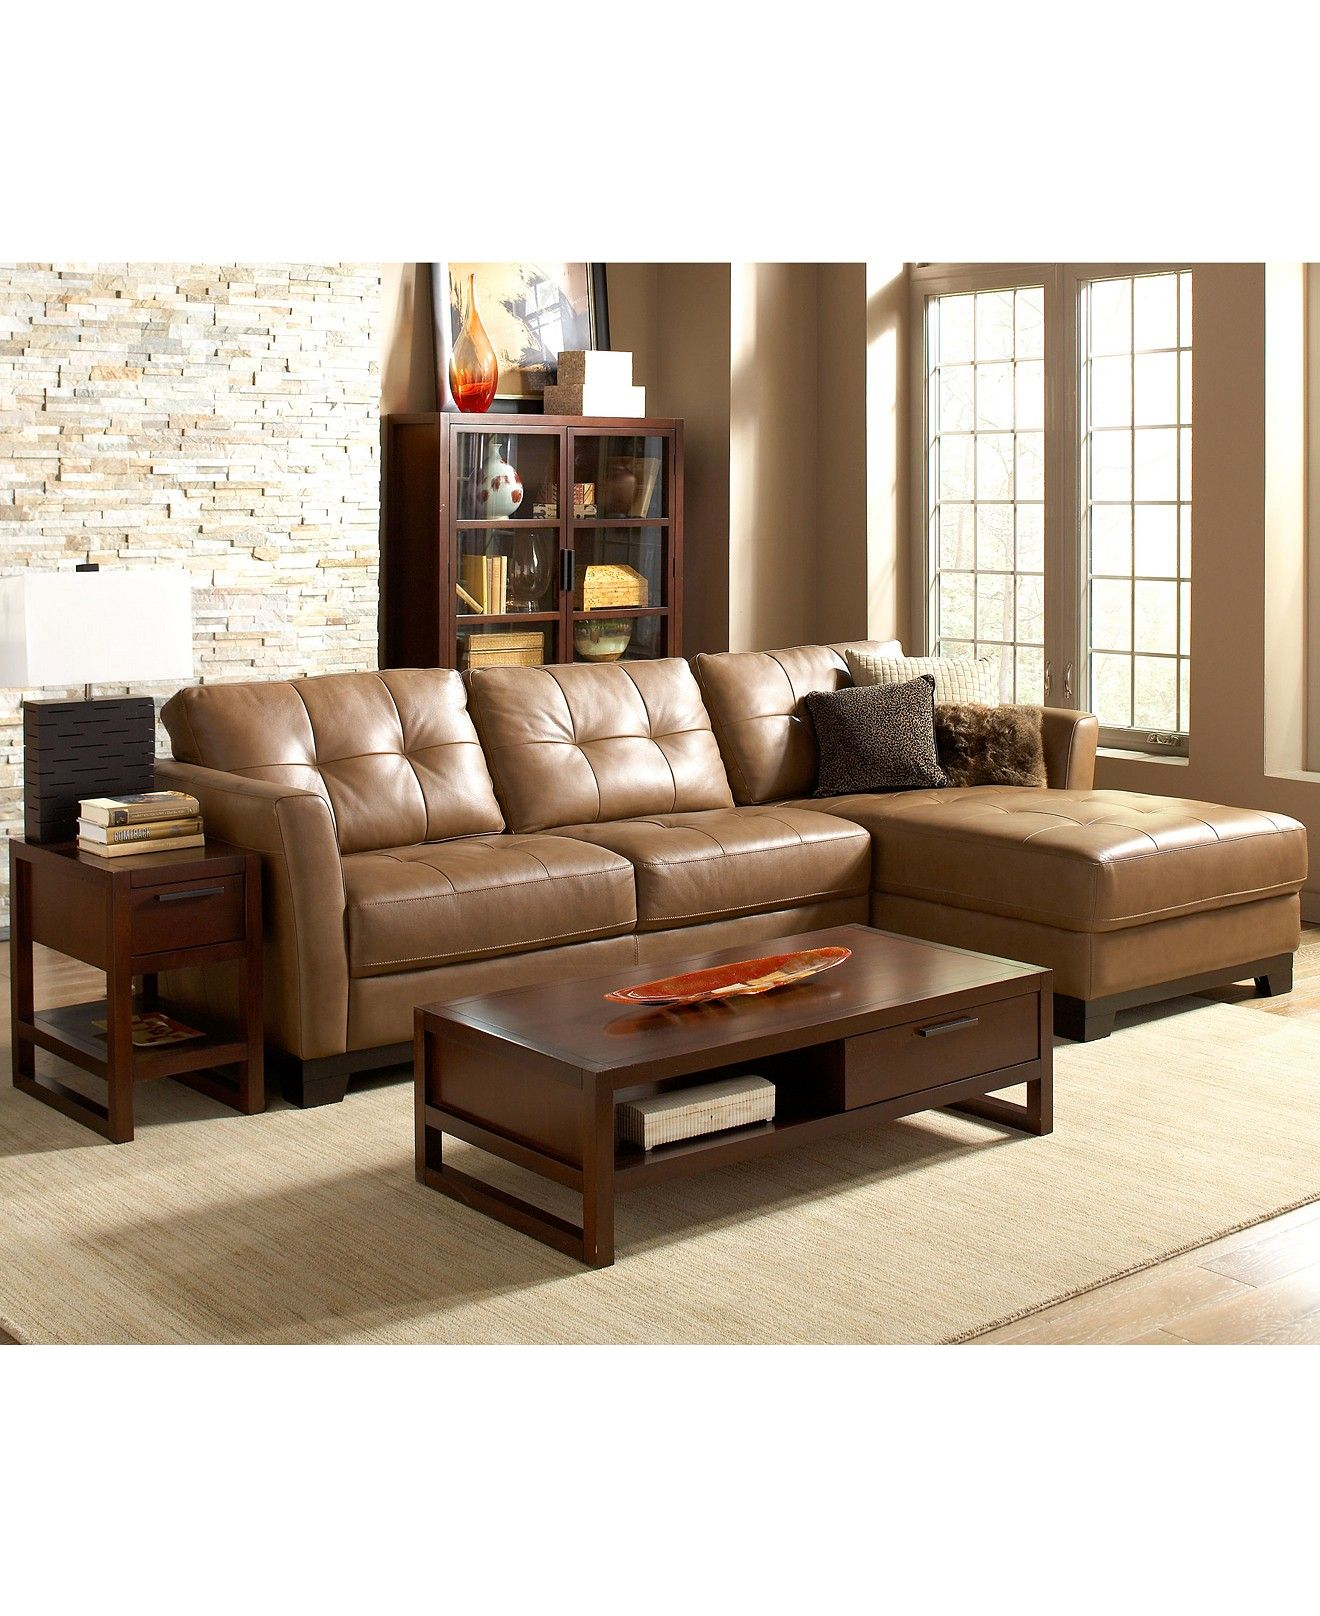 Martino Leather Chaise Sectional Sofa, 2 Piece (Apartment ...